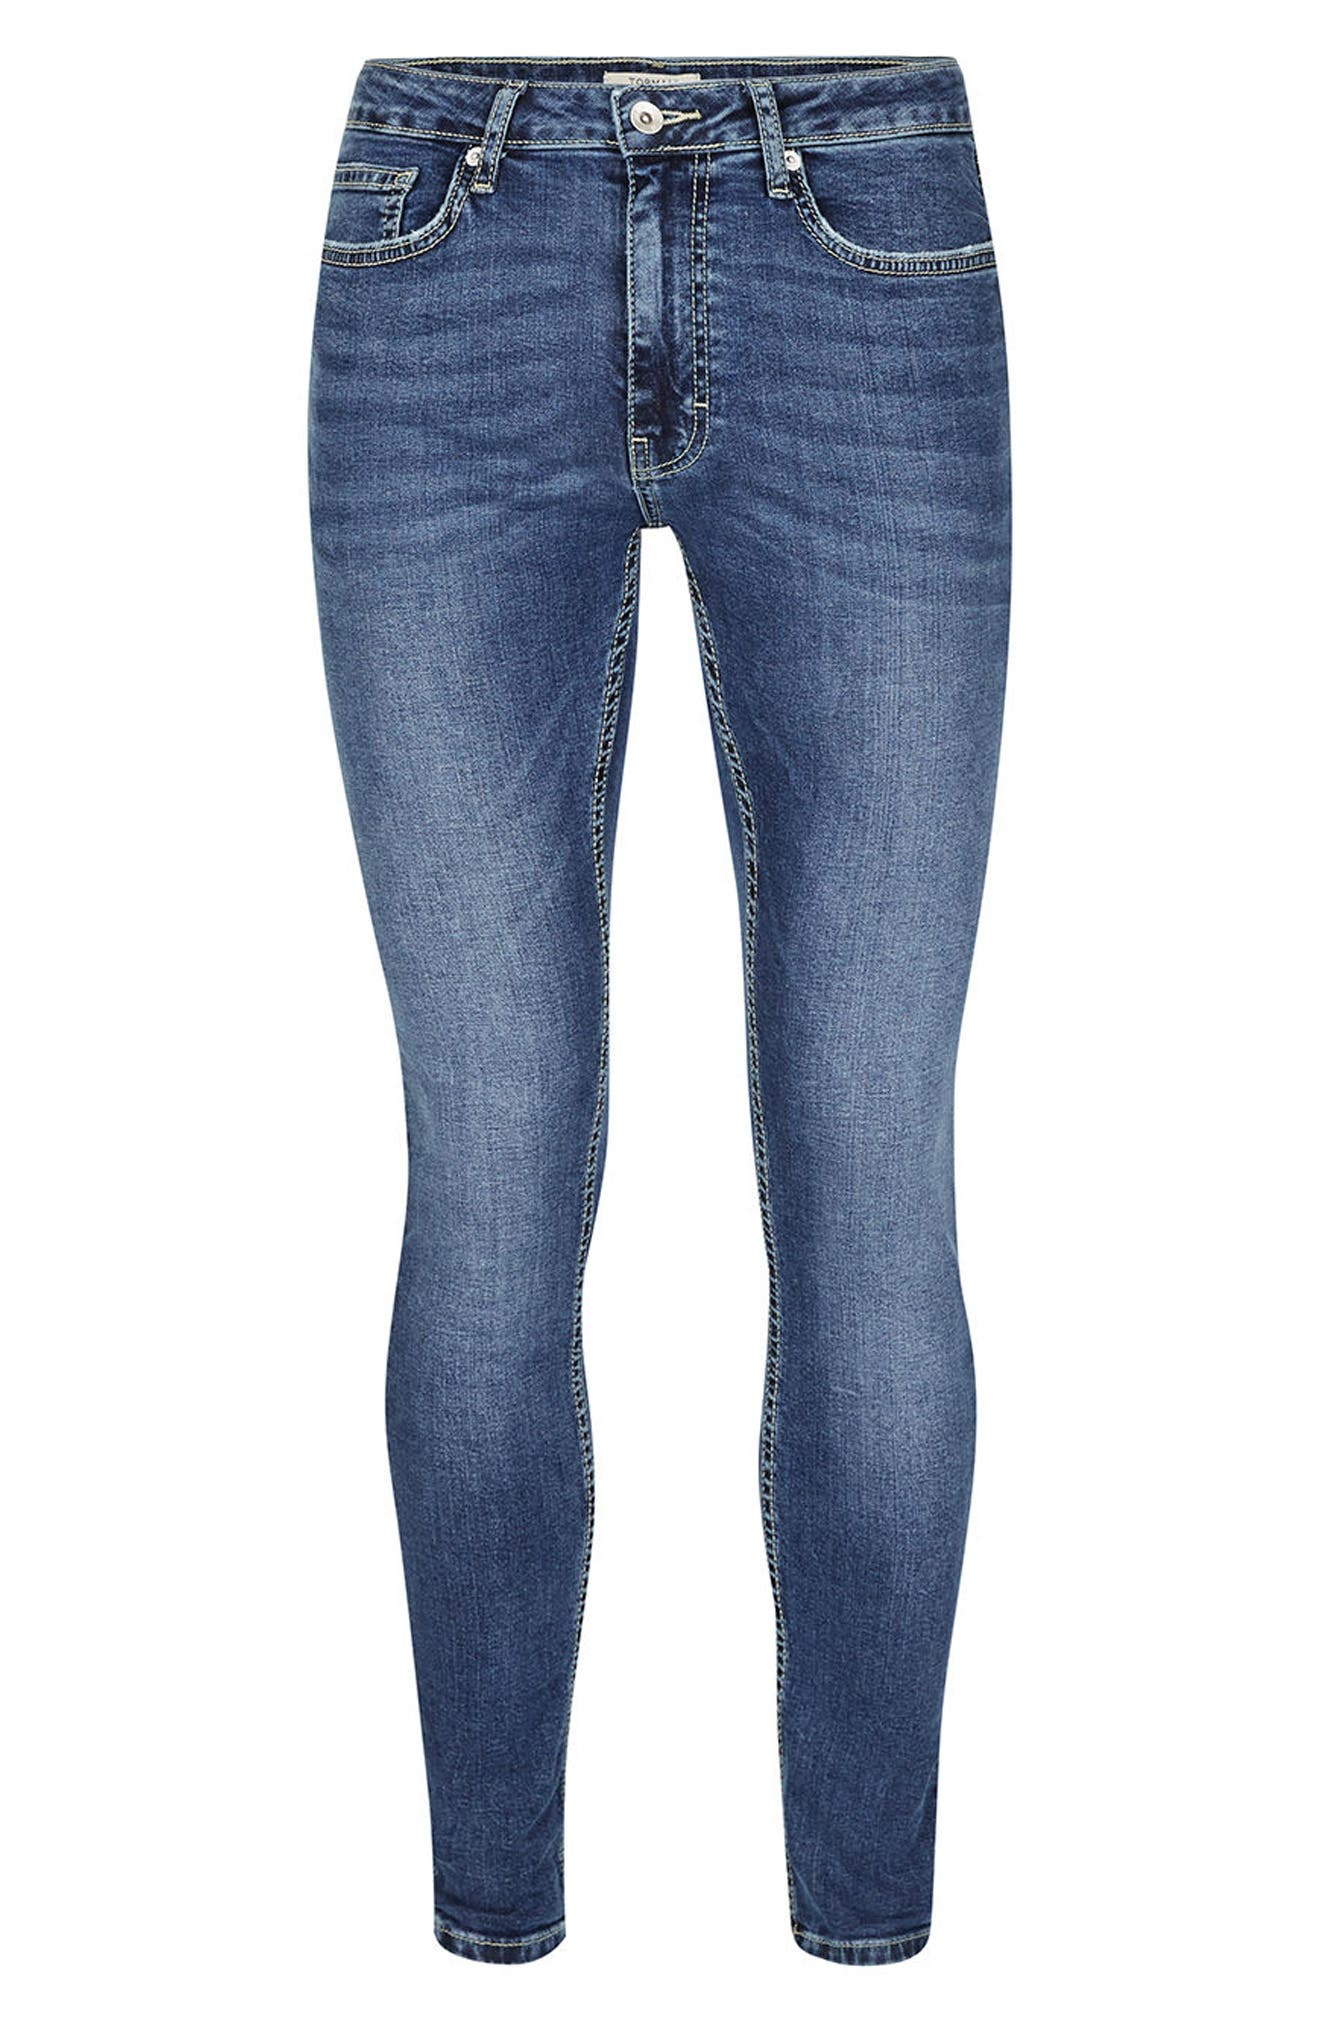 Spray-On Skinny Fit Jeans,                             Alternate thumbnail 4, color,                             400